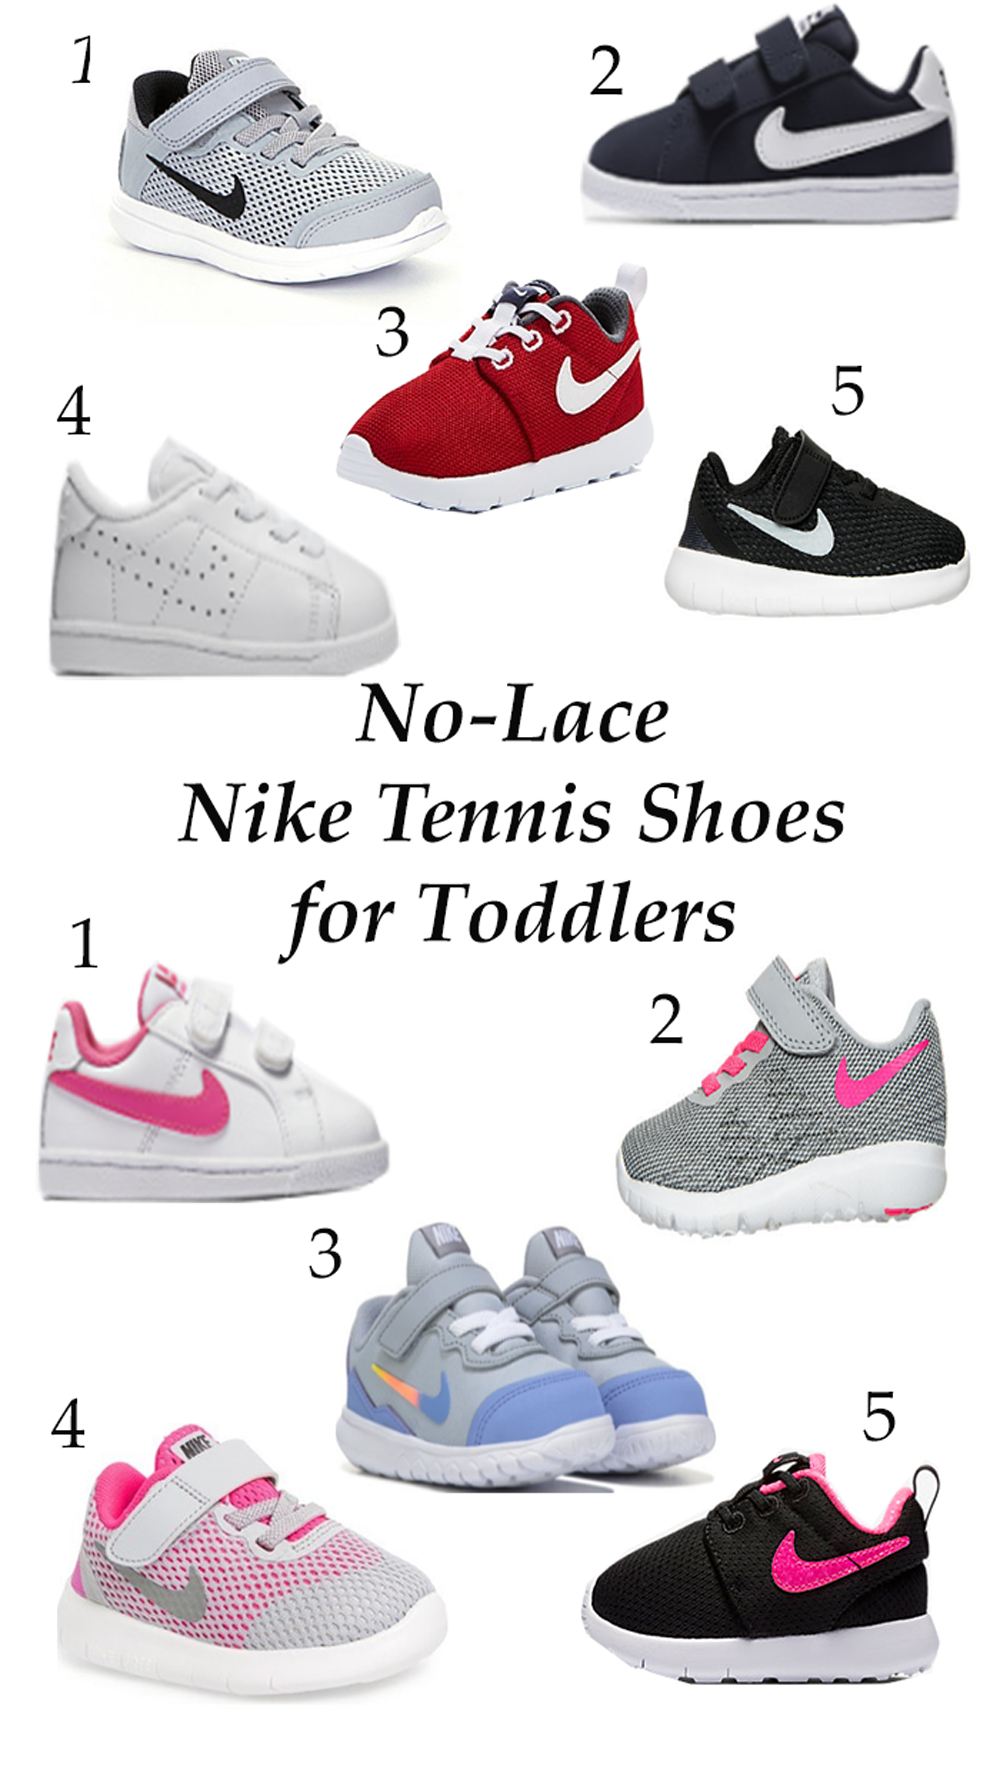 Our Favorite No Lace Nike Tennis Shoes For Toddlers Toddler Shoes Nike Tennis Shoes Tennis Shoes